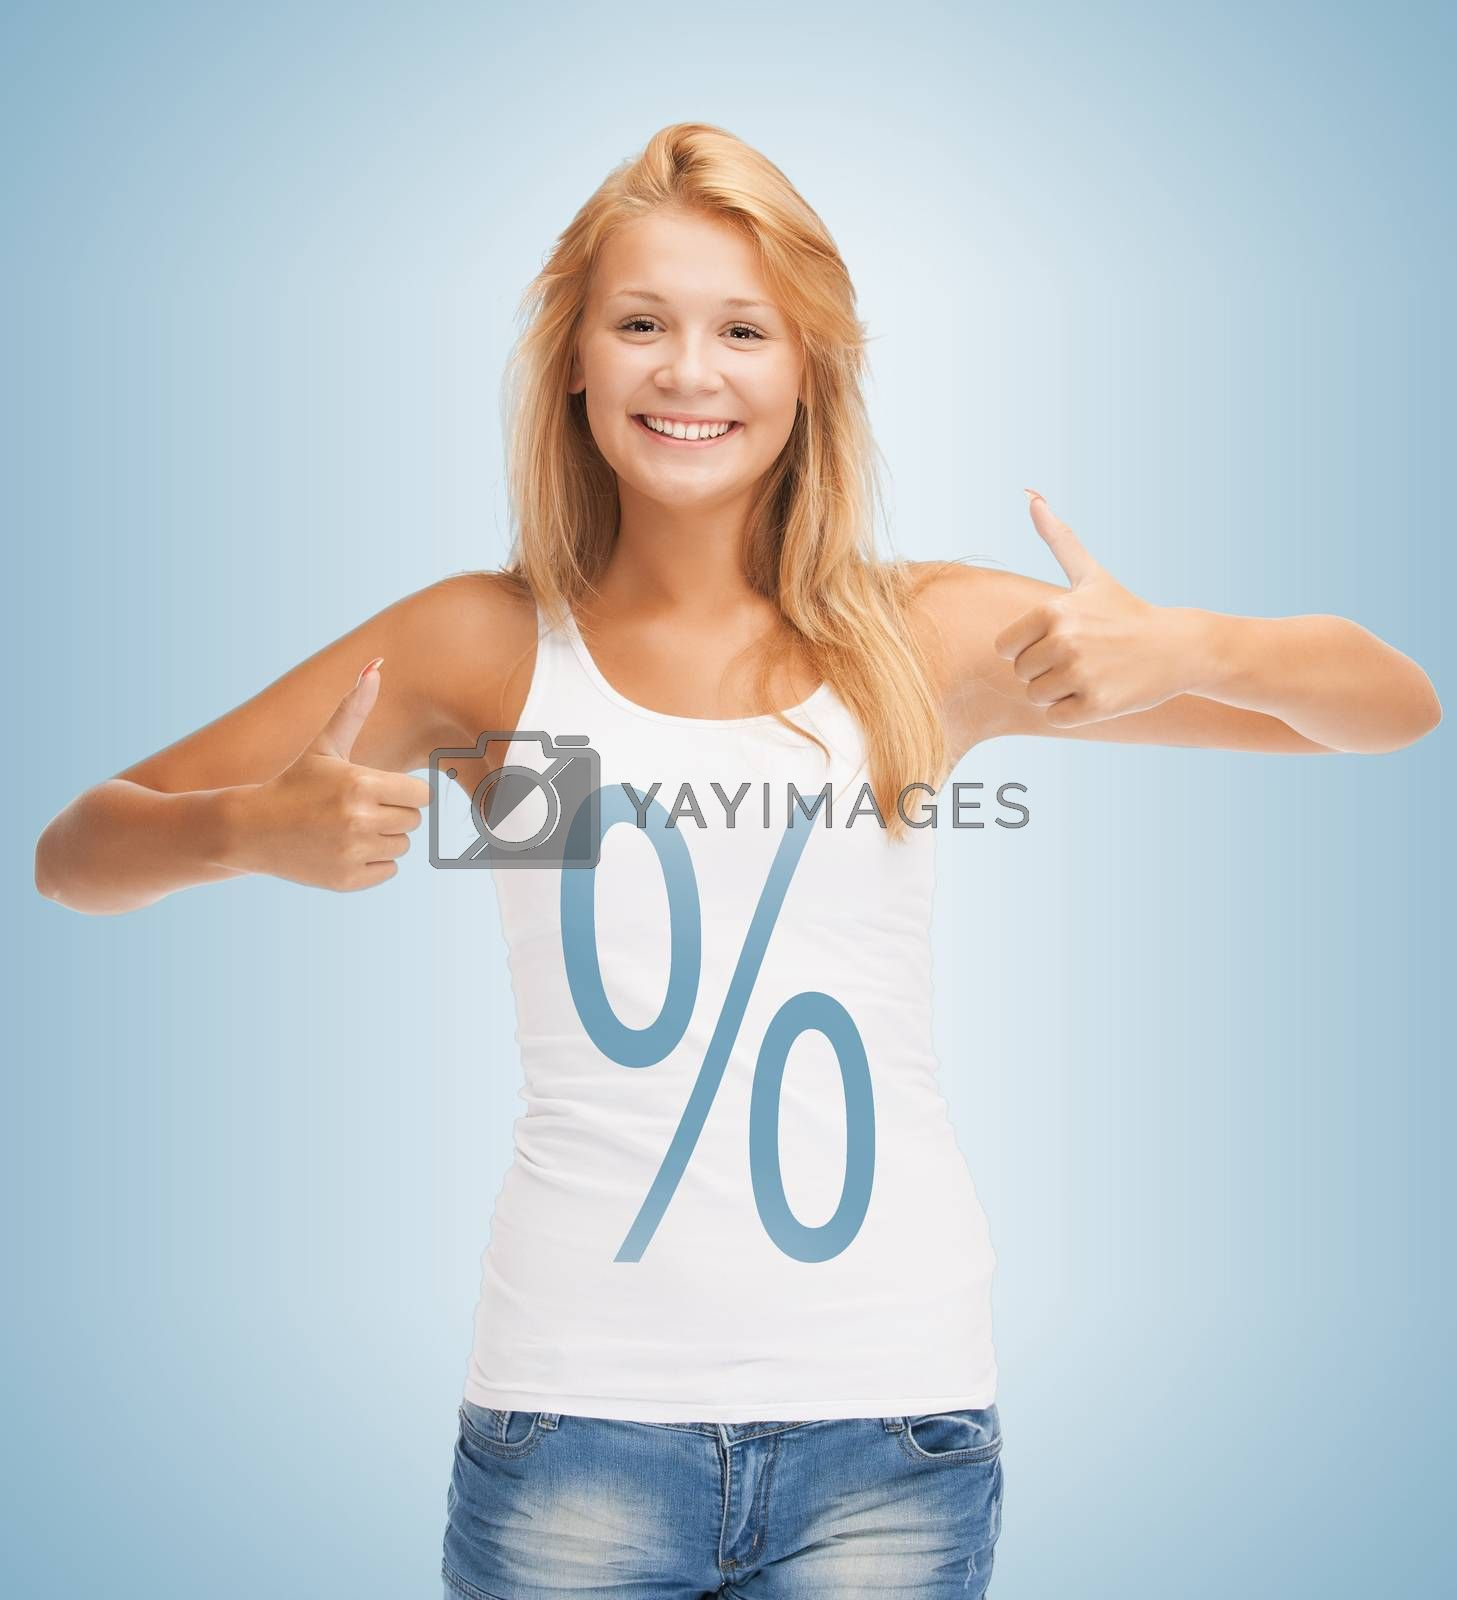 girl pointing at percent sign by dolgachov